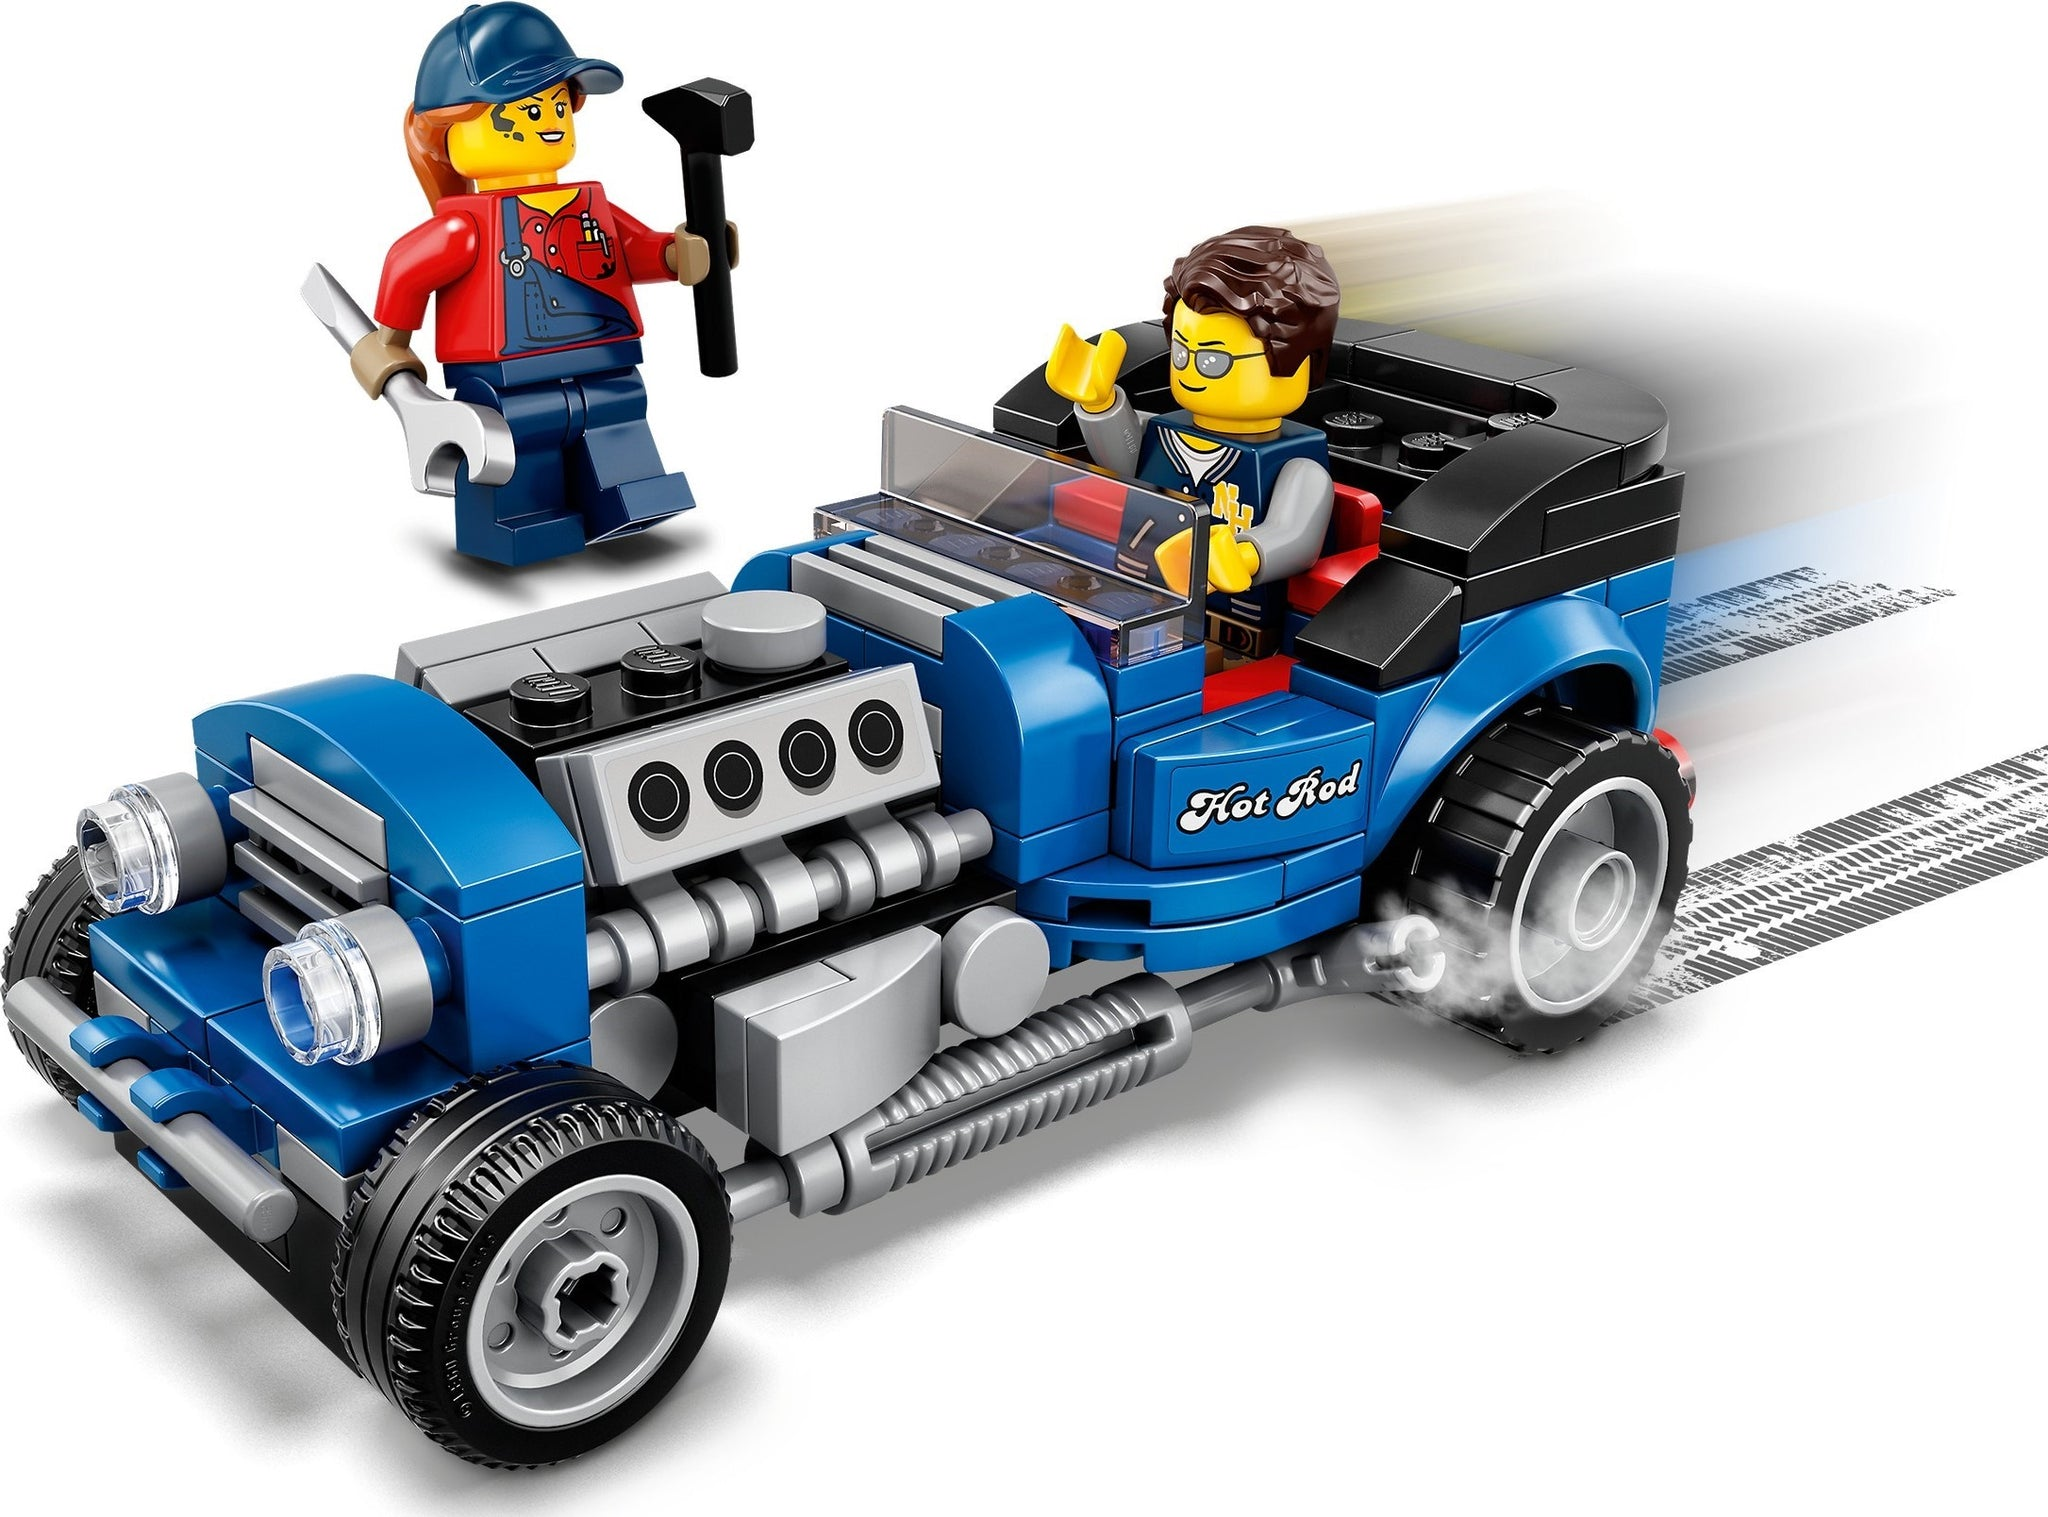 LEGO - Replica of model 5541 - Hot Rod (40409) Building Toy